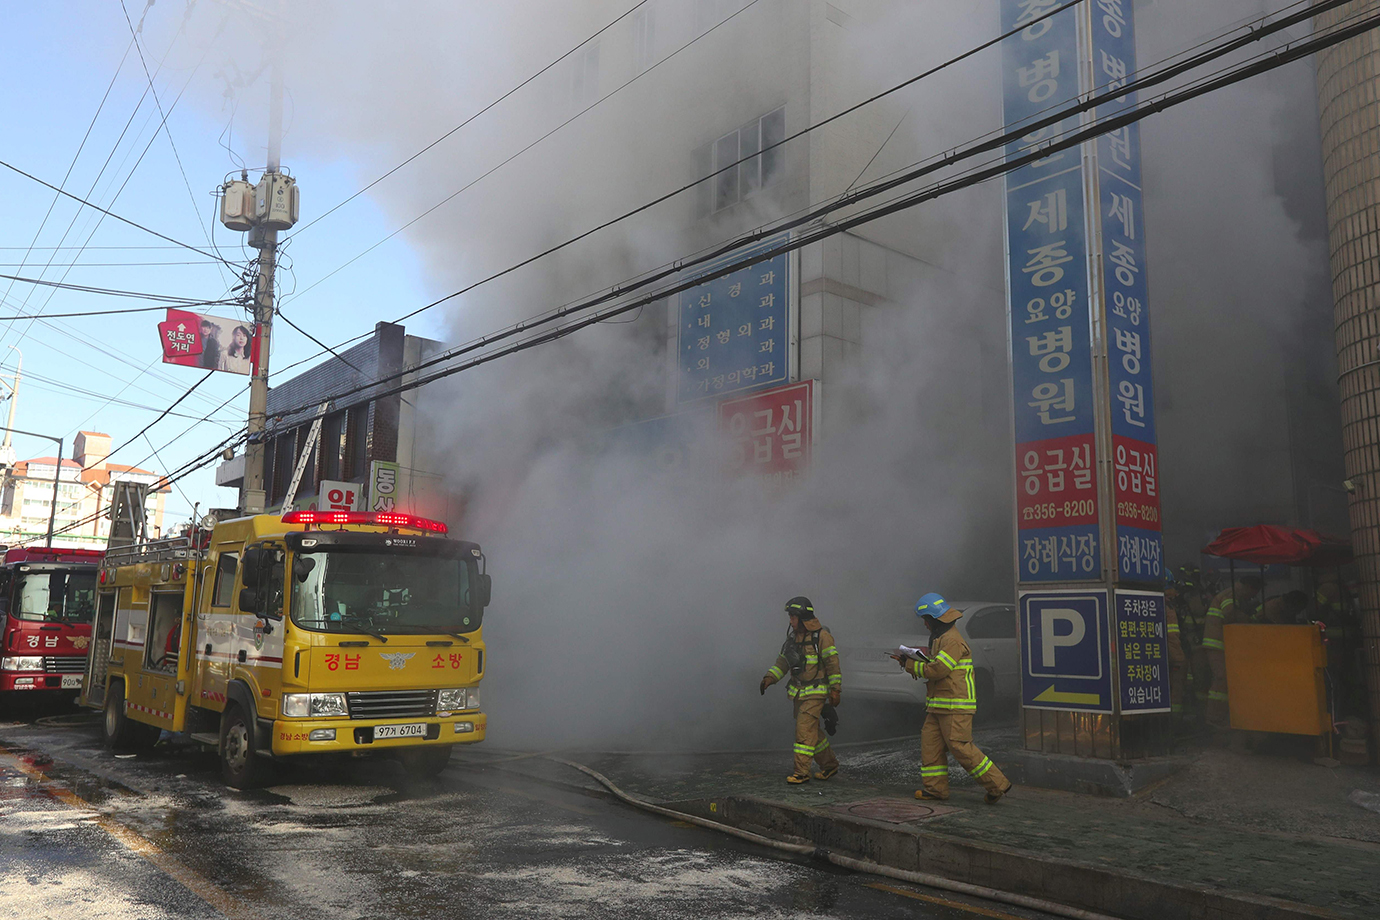 Firefighters try to put out a fire at a hospital building engulfed by heavy grey smoke in Miryang on